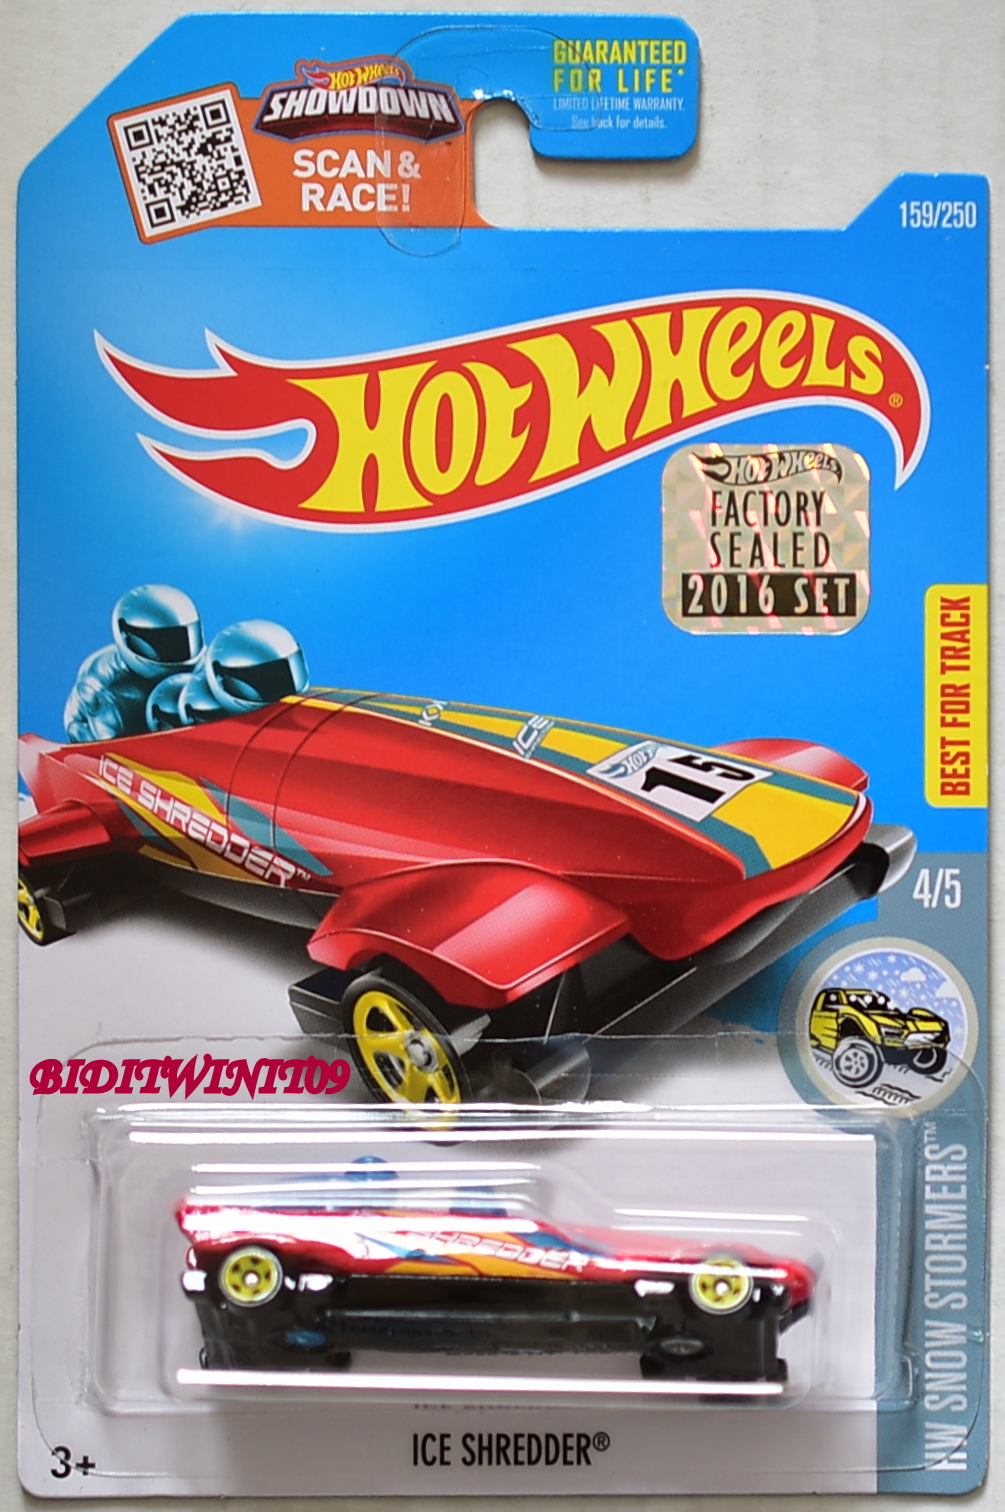 HOT WHEELS 2016 HW SNOW STORMERS ICE SHREDDER RED FACTORY SEALED